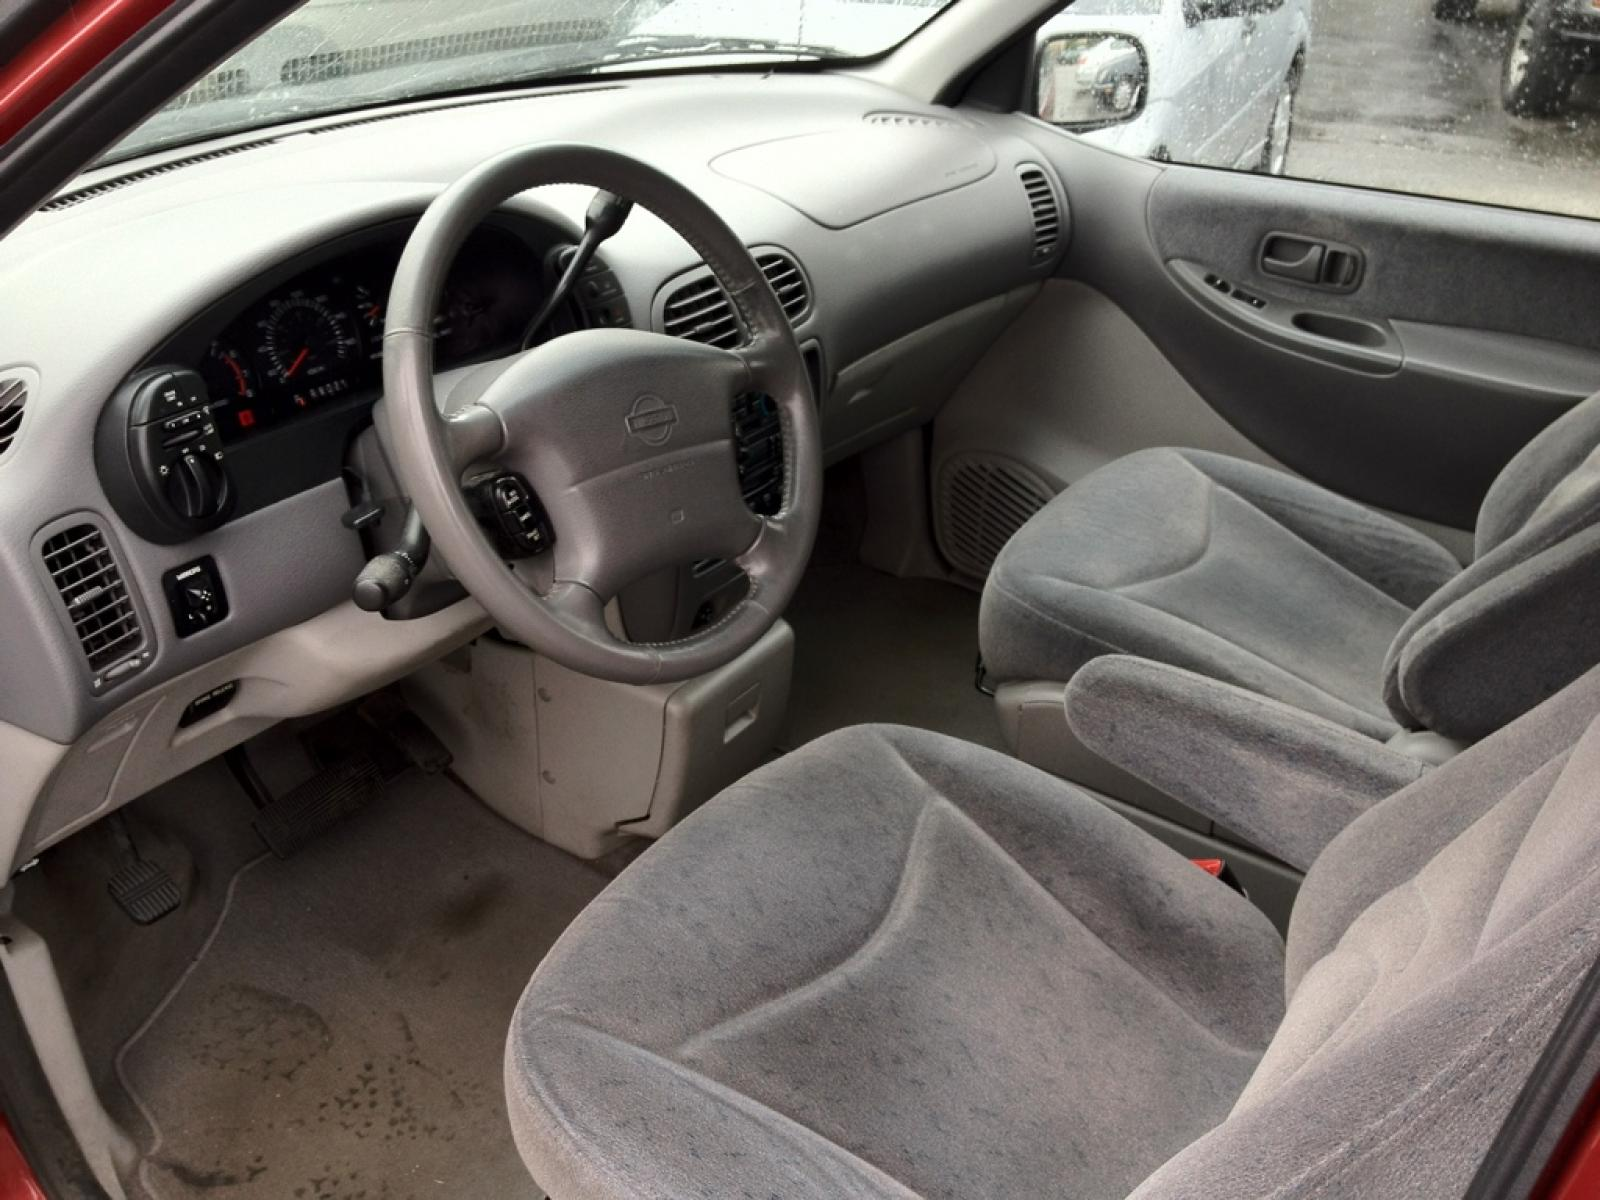 1998 nissan quest information and photos zombiedrive 800 1024 1280 1600 origin 1998 nissan quest vanachro Gallery